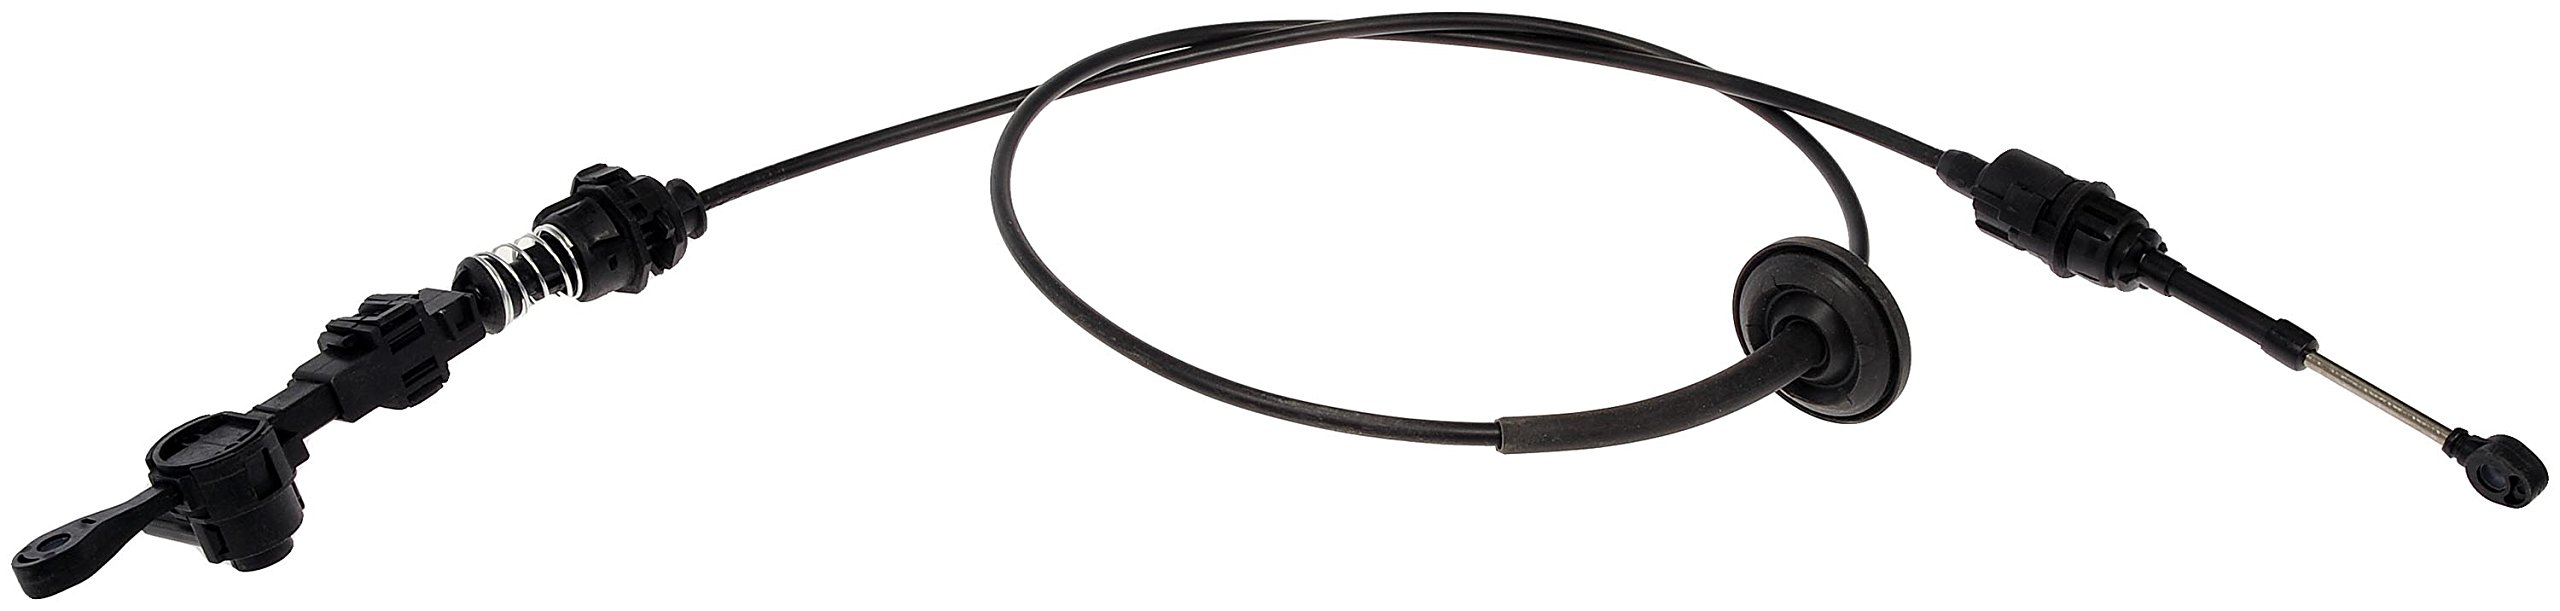 Dorman 905-602 Gearshift Control Cable